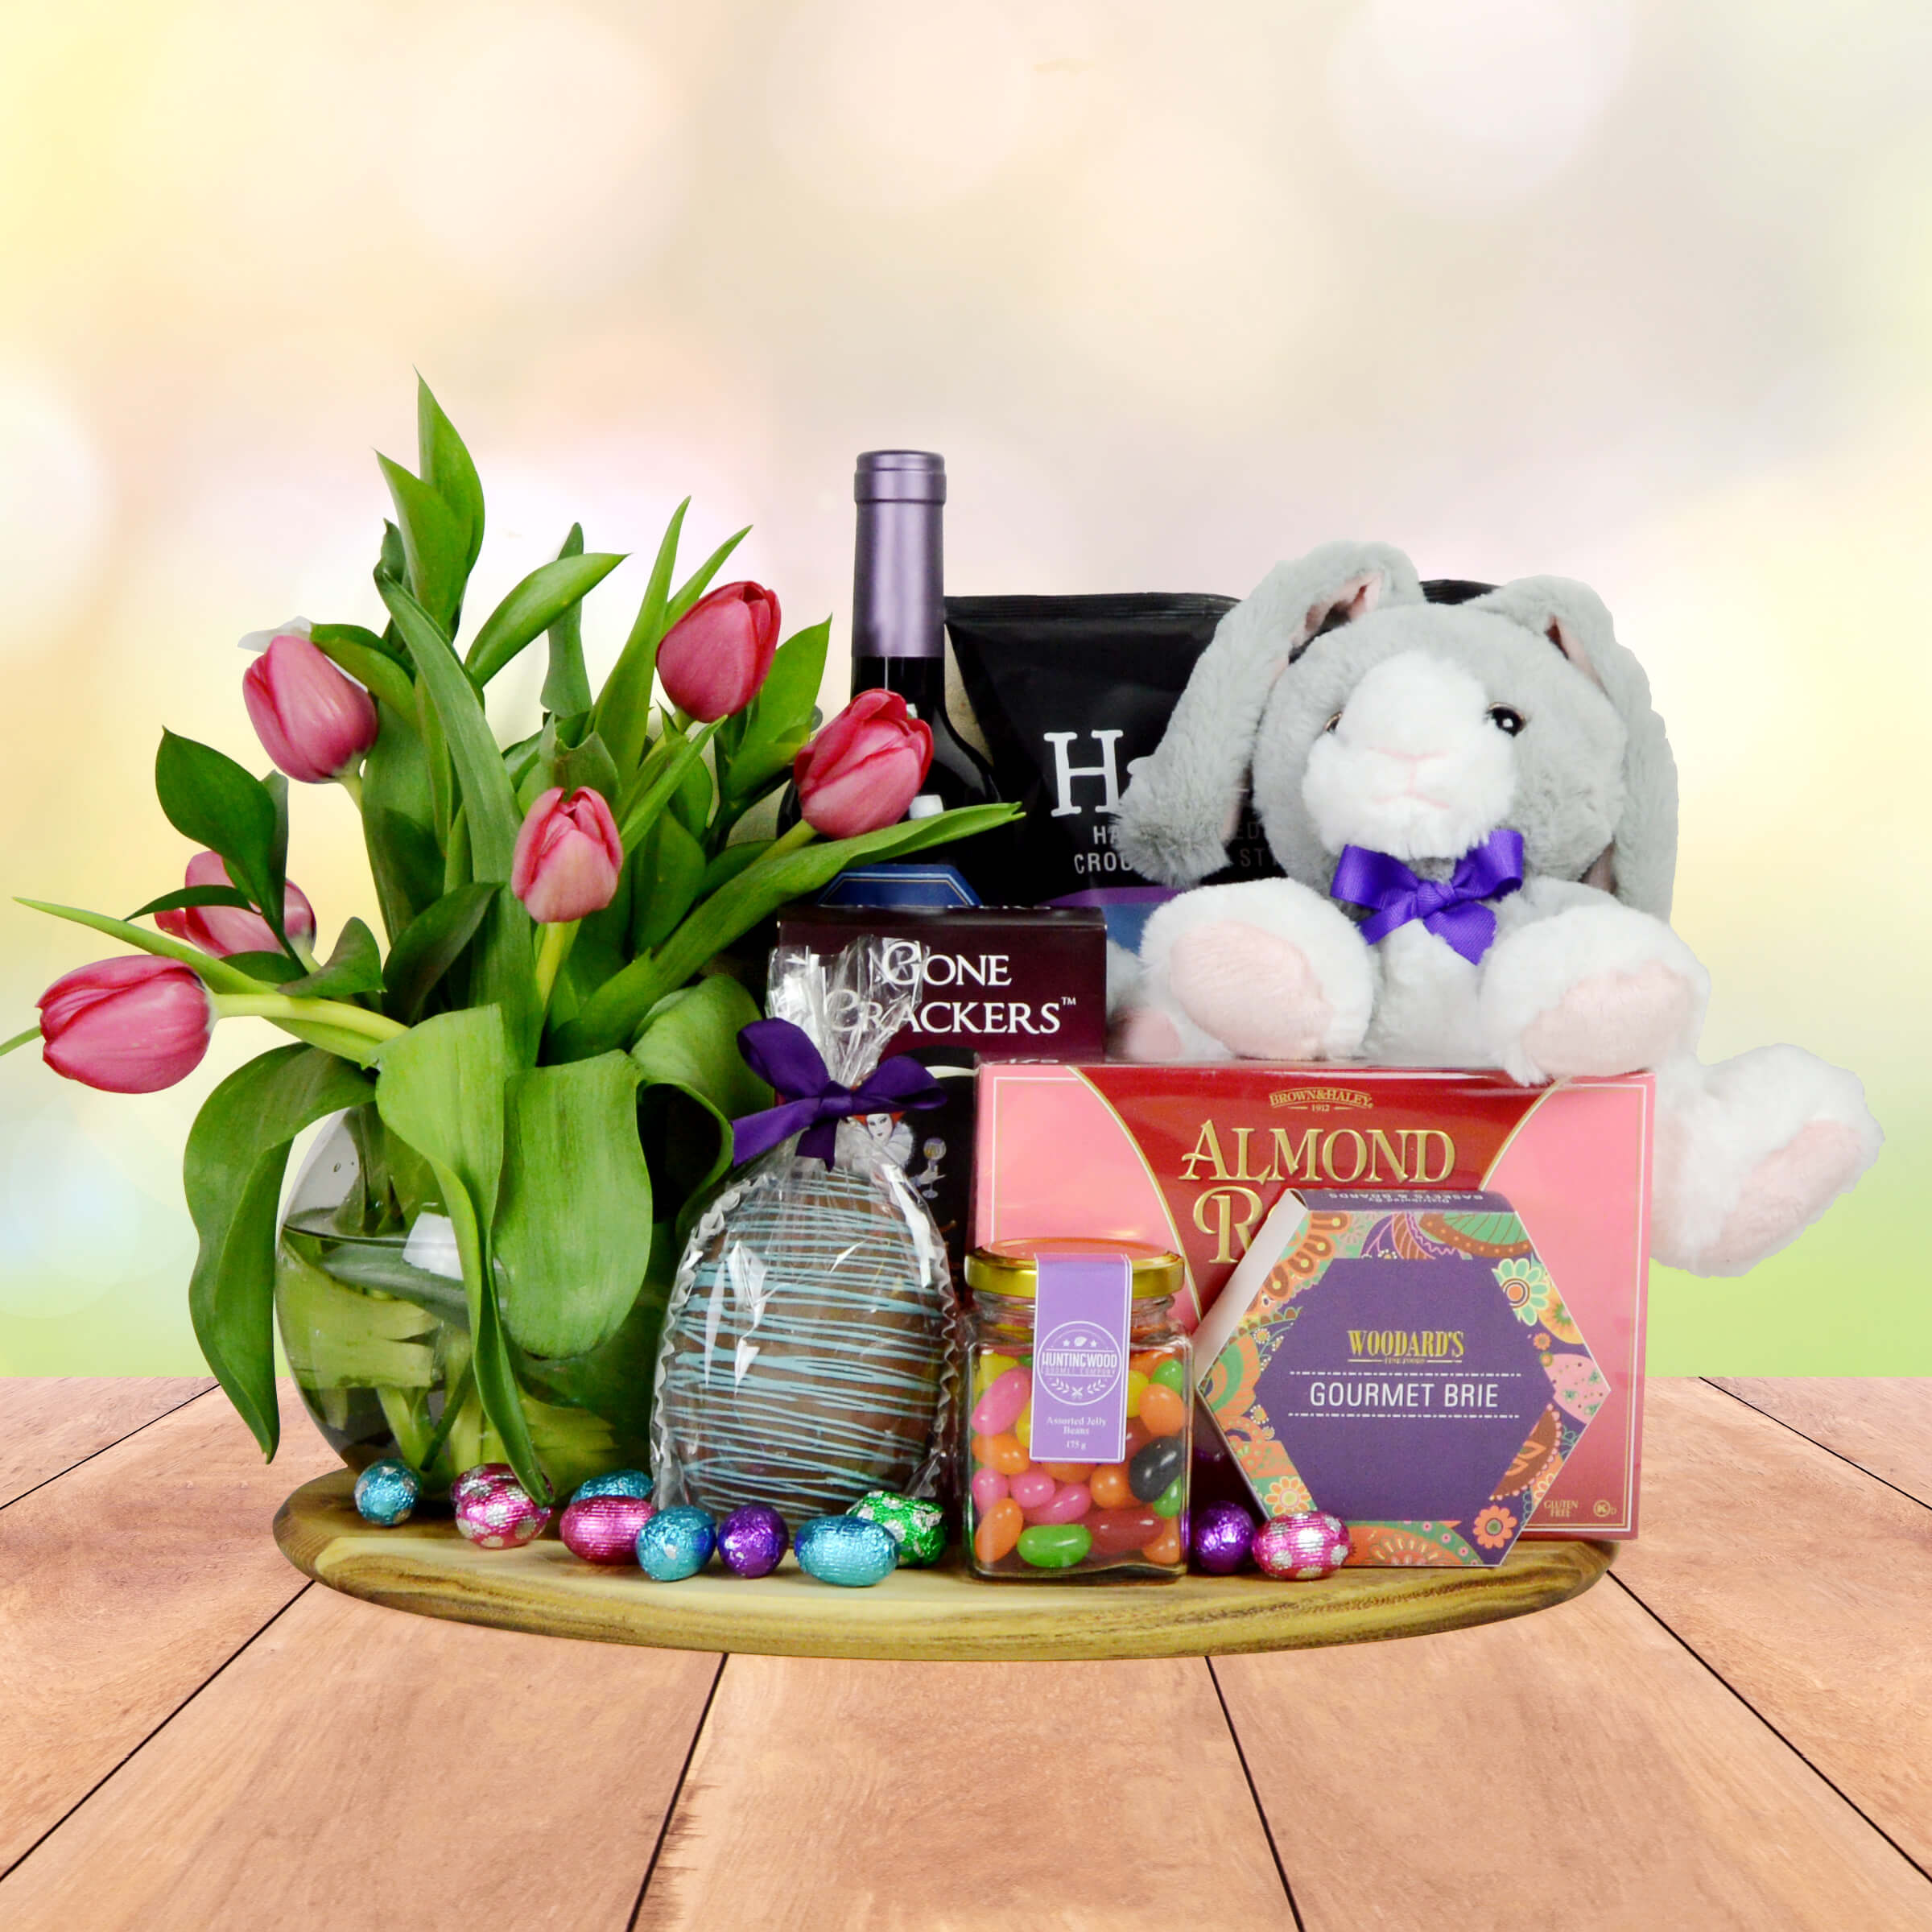 The Easter Care Package Gift Set